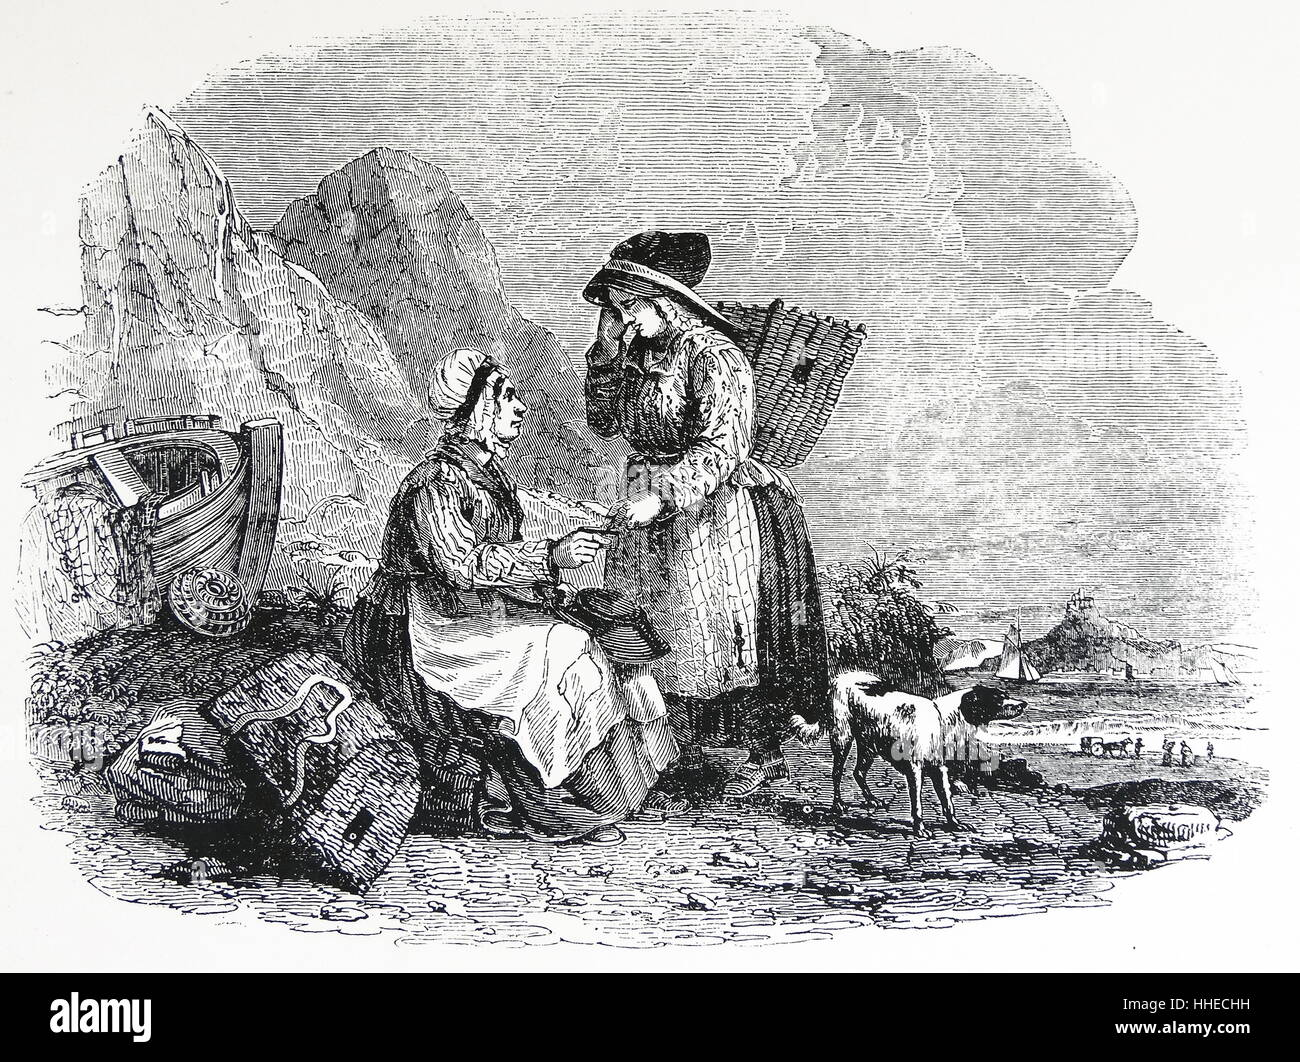 Cornish fisher women, willow baskets or cauwals 1836 - Stock Image